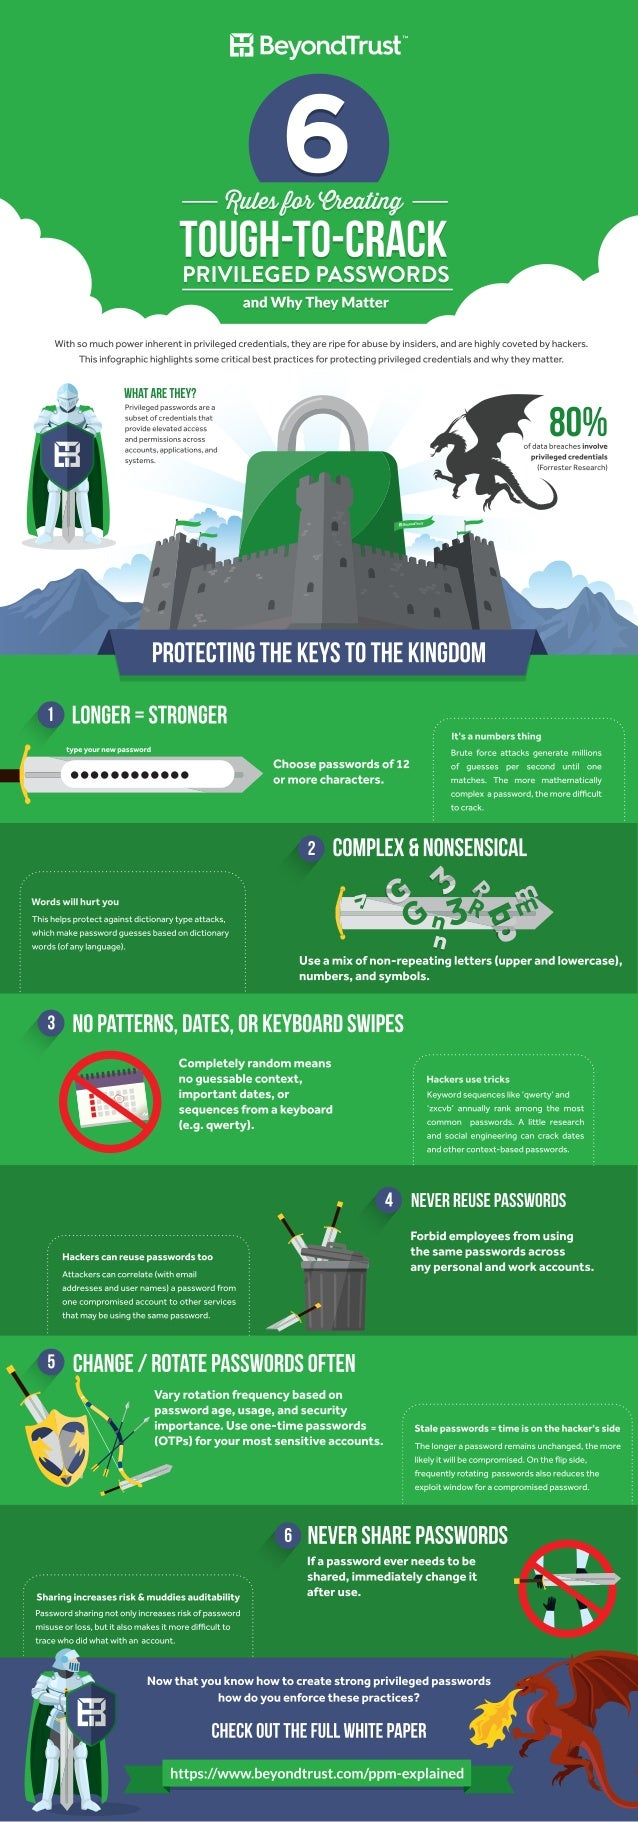 6 Rules for Creating Tough-to-Crack Privileged Passwords (infographic)